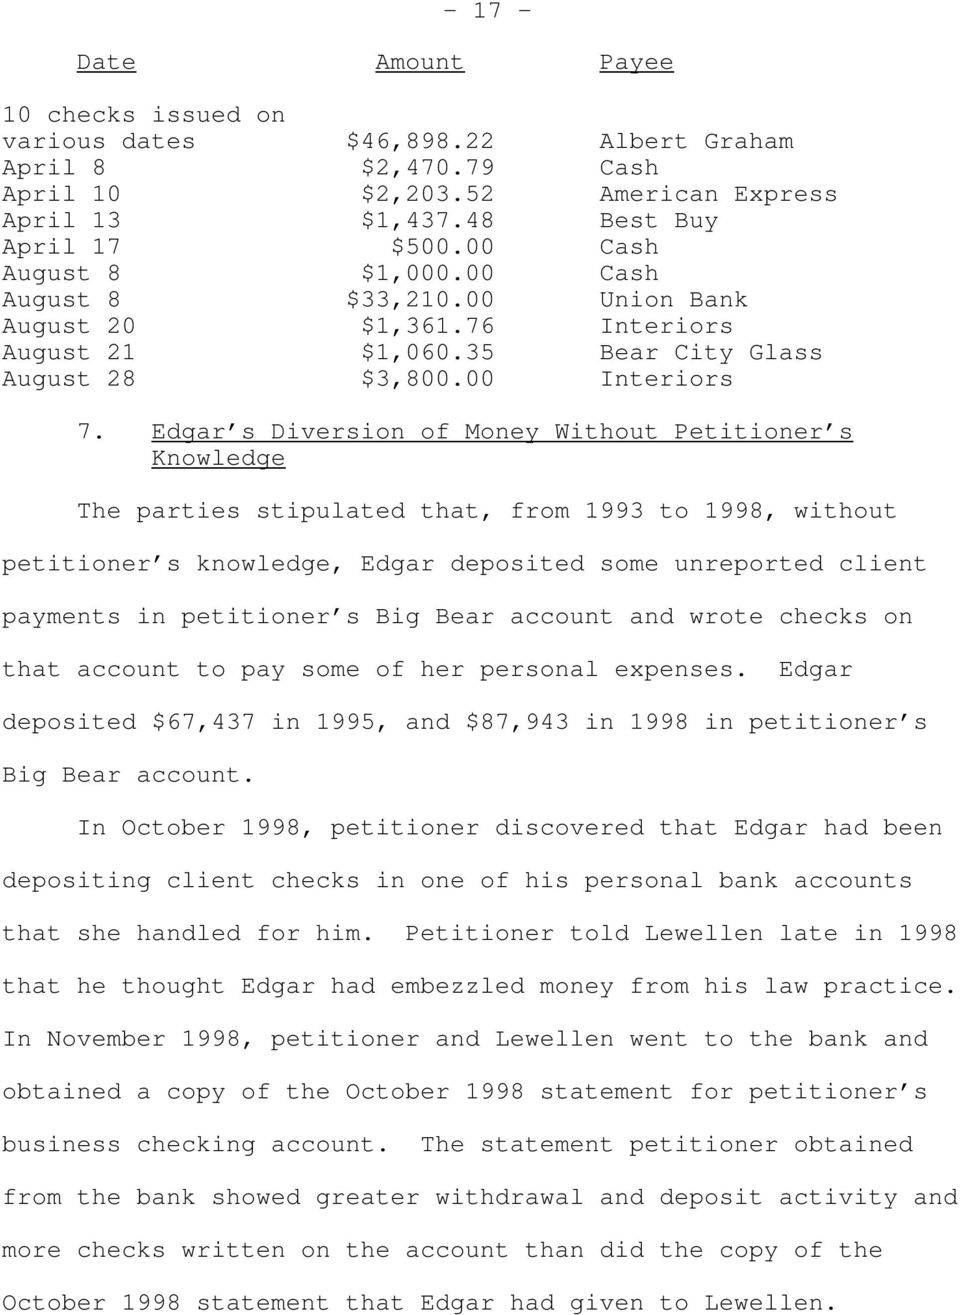 Edgar s Diversion of Money Without Petitioner s Knowledge The parties stipulated that, from 1993 to 1998, without petitioner s knowledge, Edgar deposited some unreported client payments in petitioner